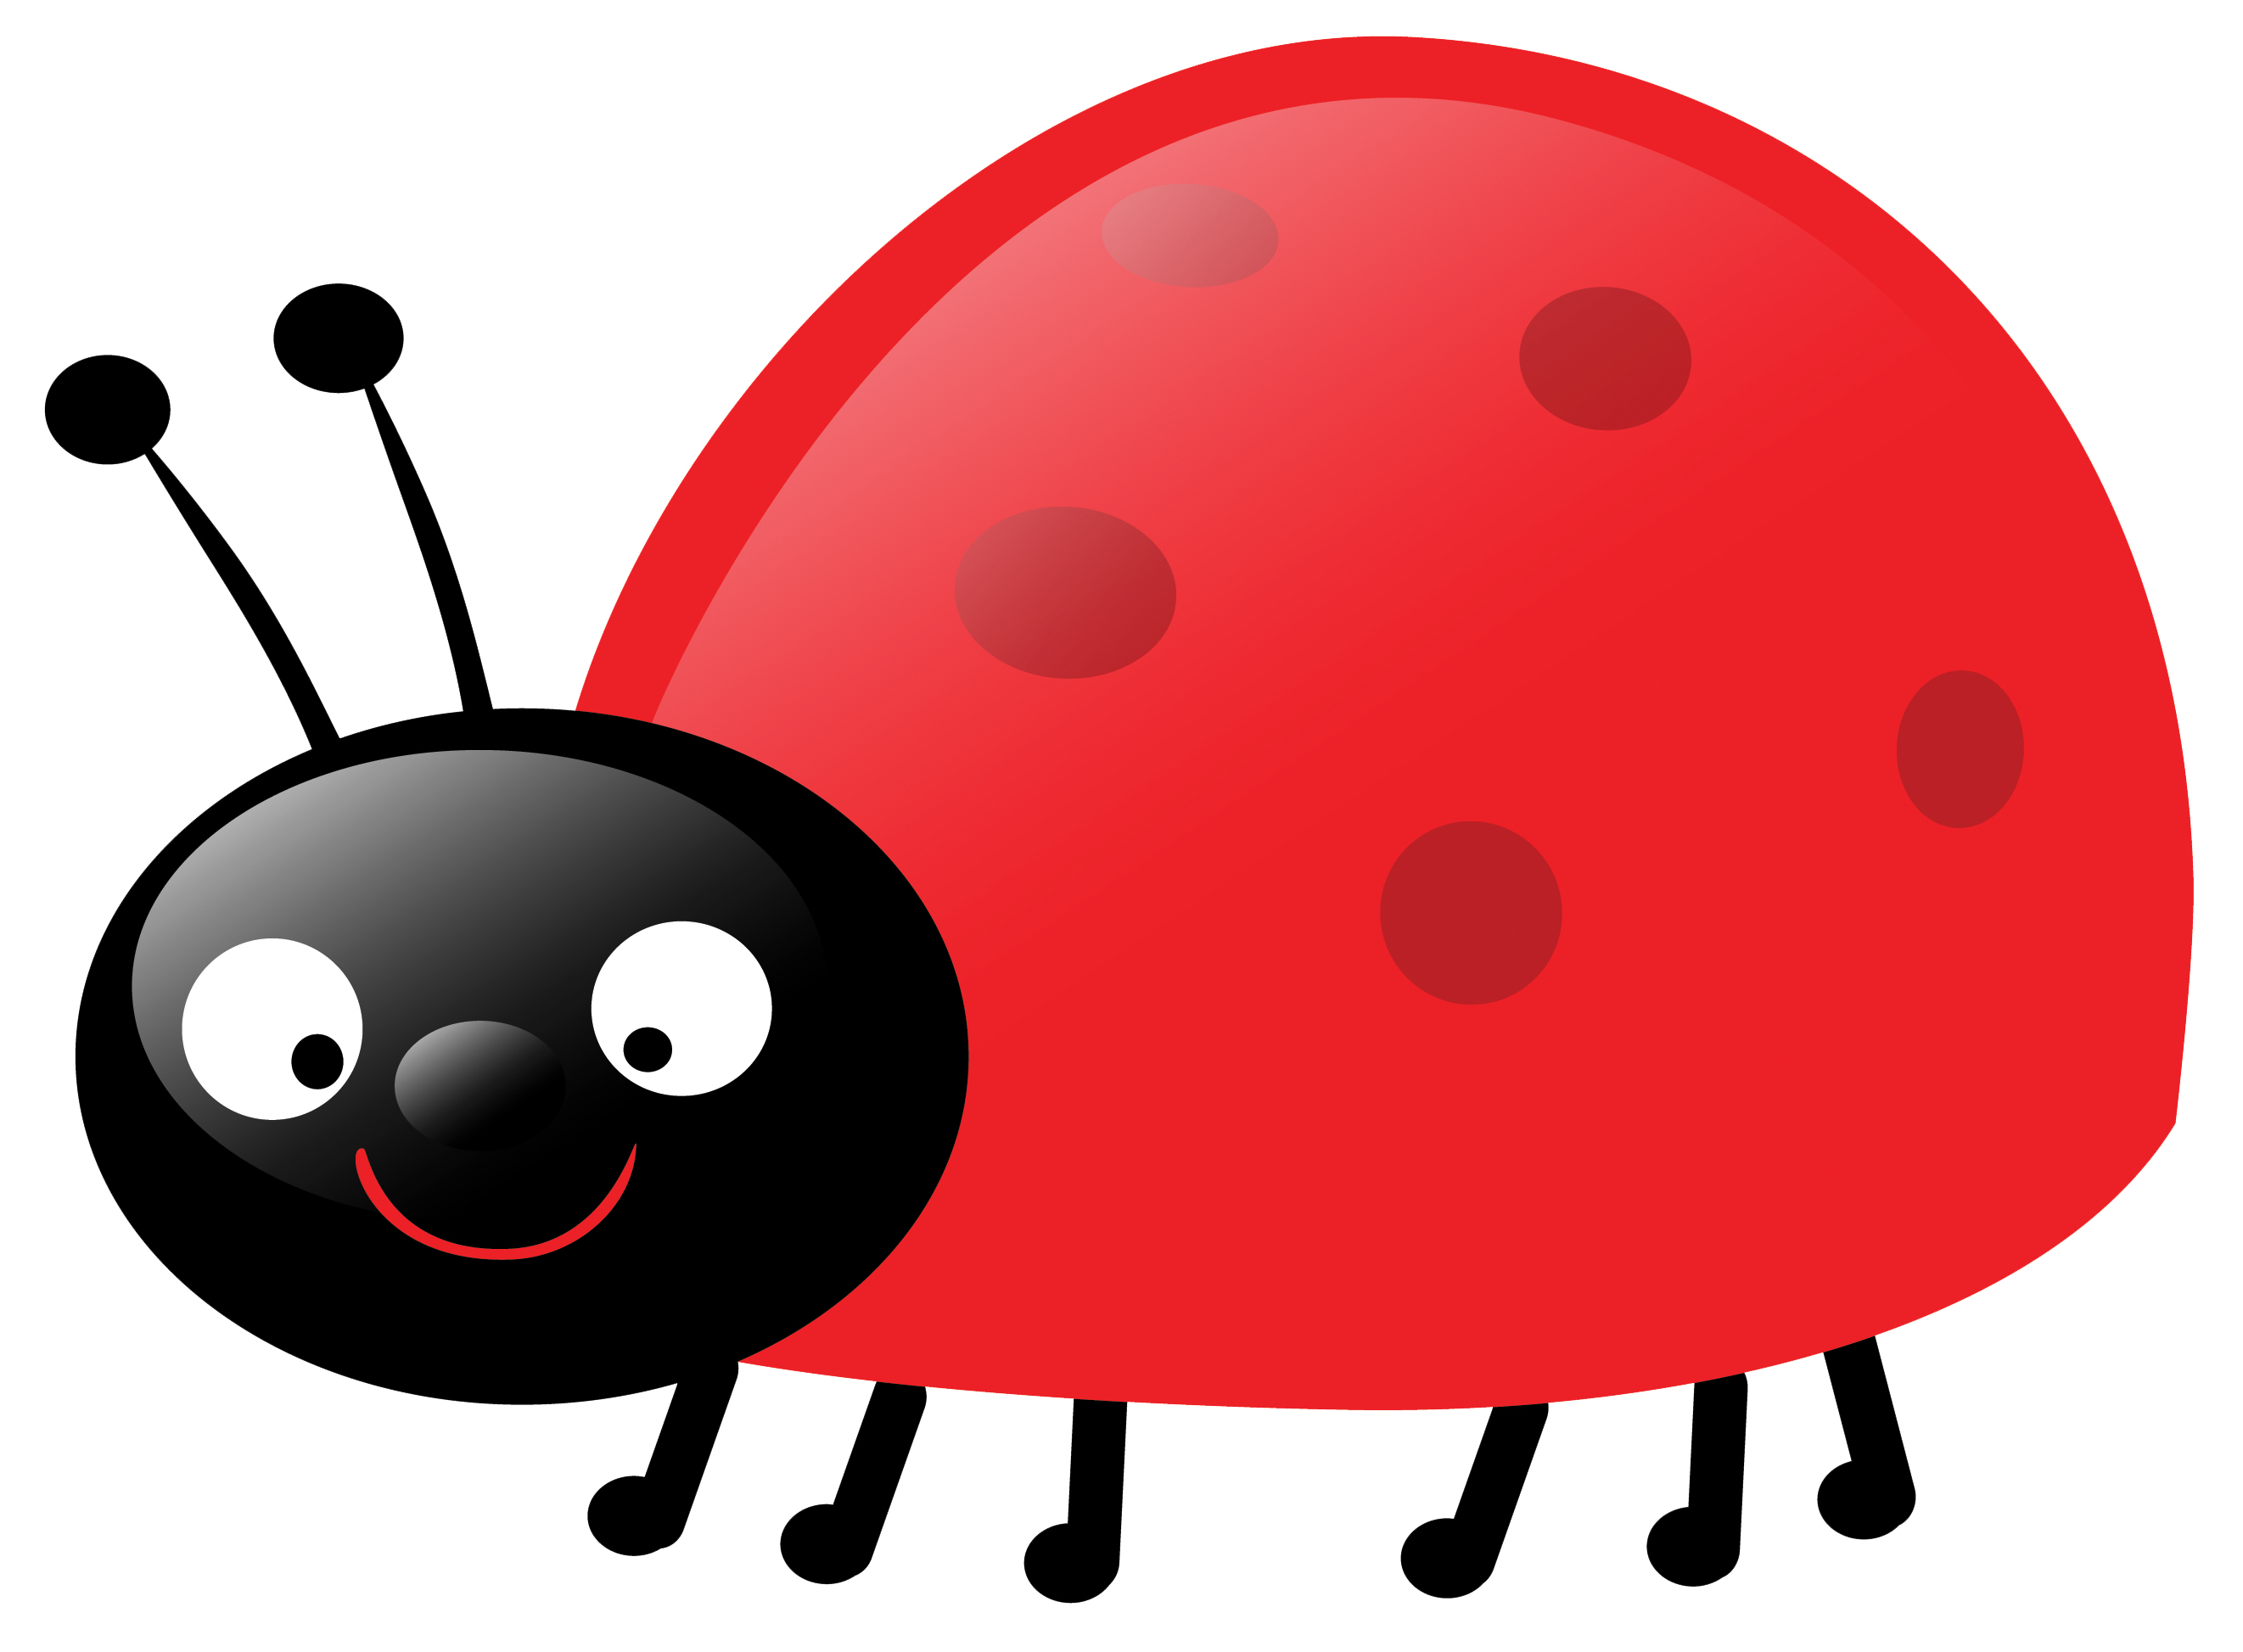 Cute Ladybug Pictures - ClipArt Best